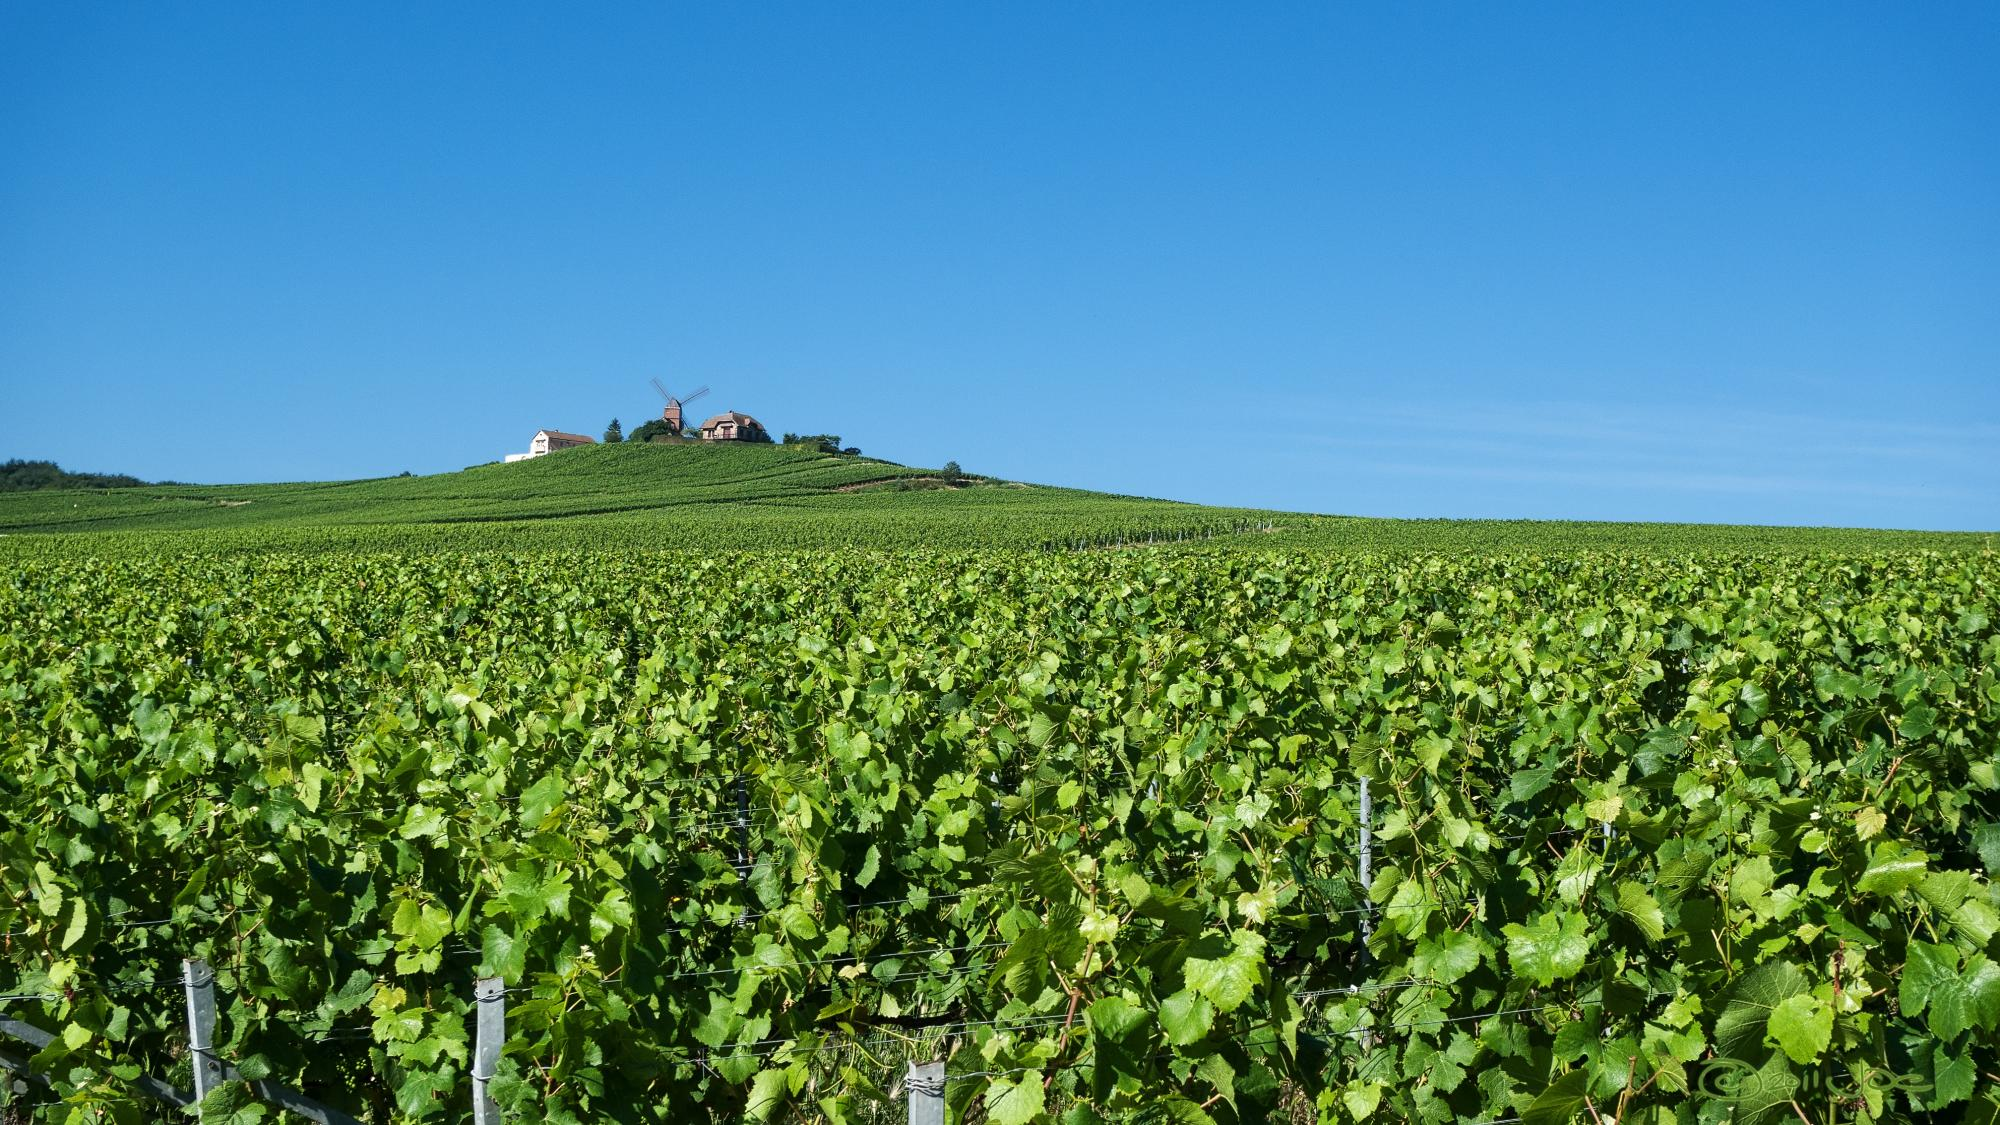 Discover Champagne - Vacation package : France, The Grand Tour  - Land of France, travel agency in France